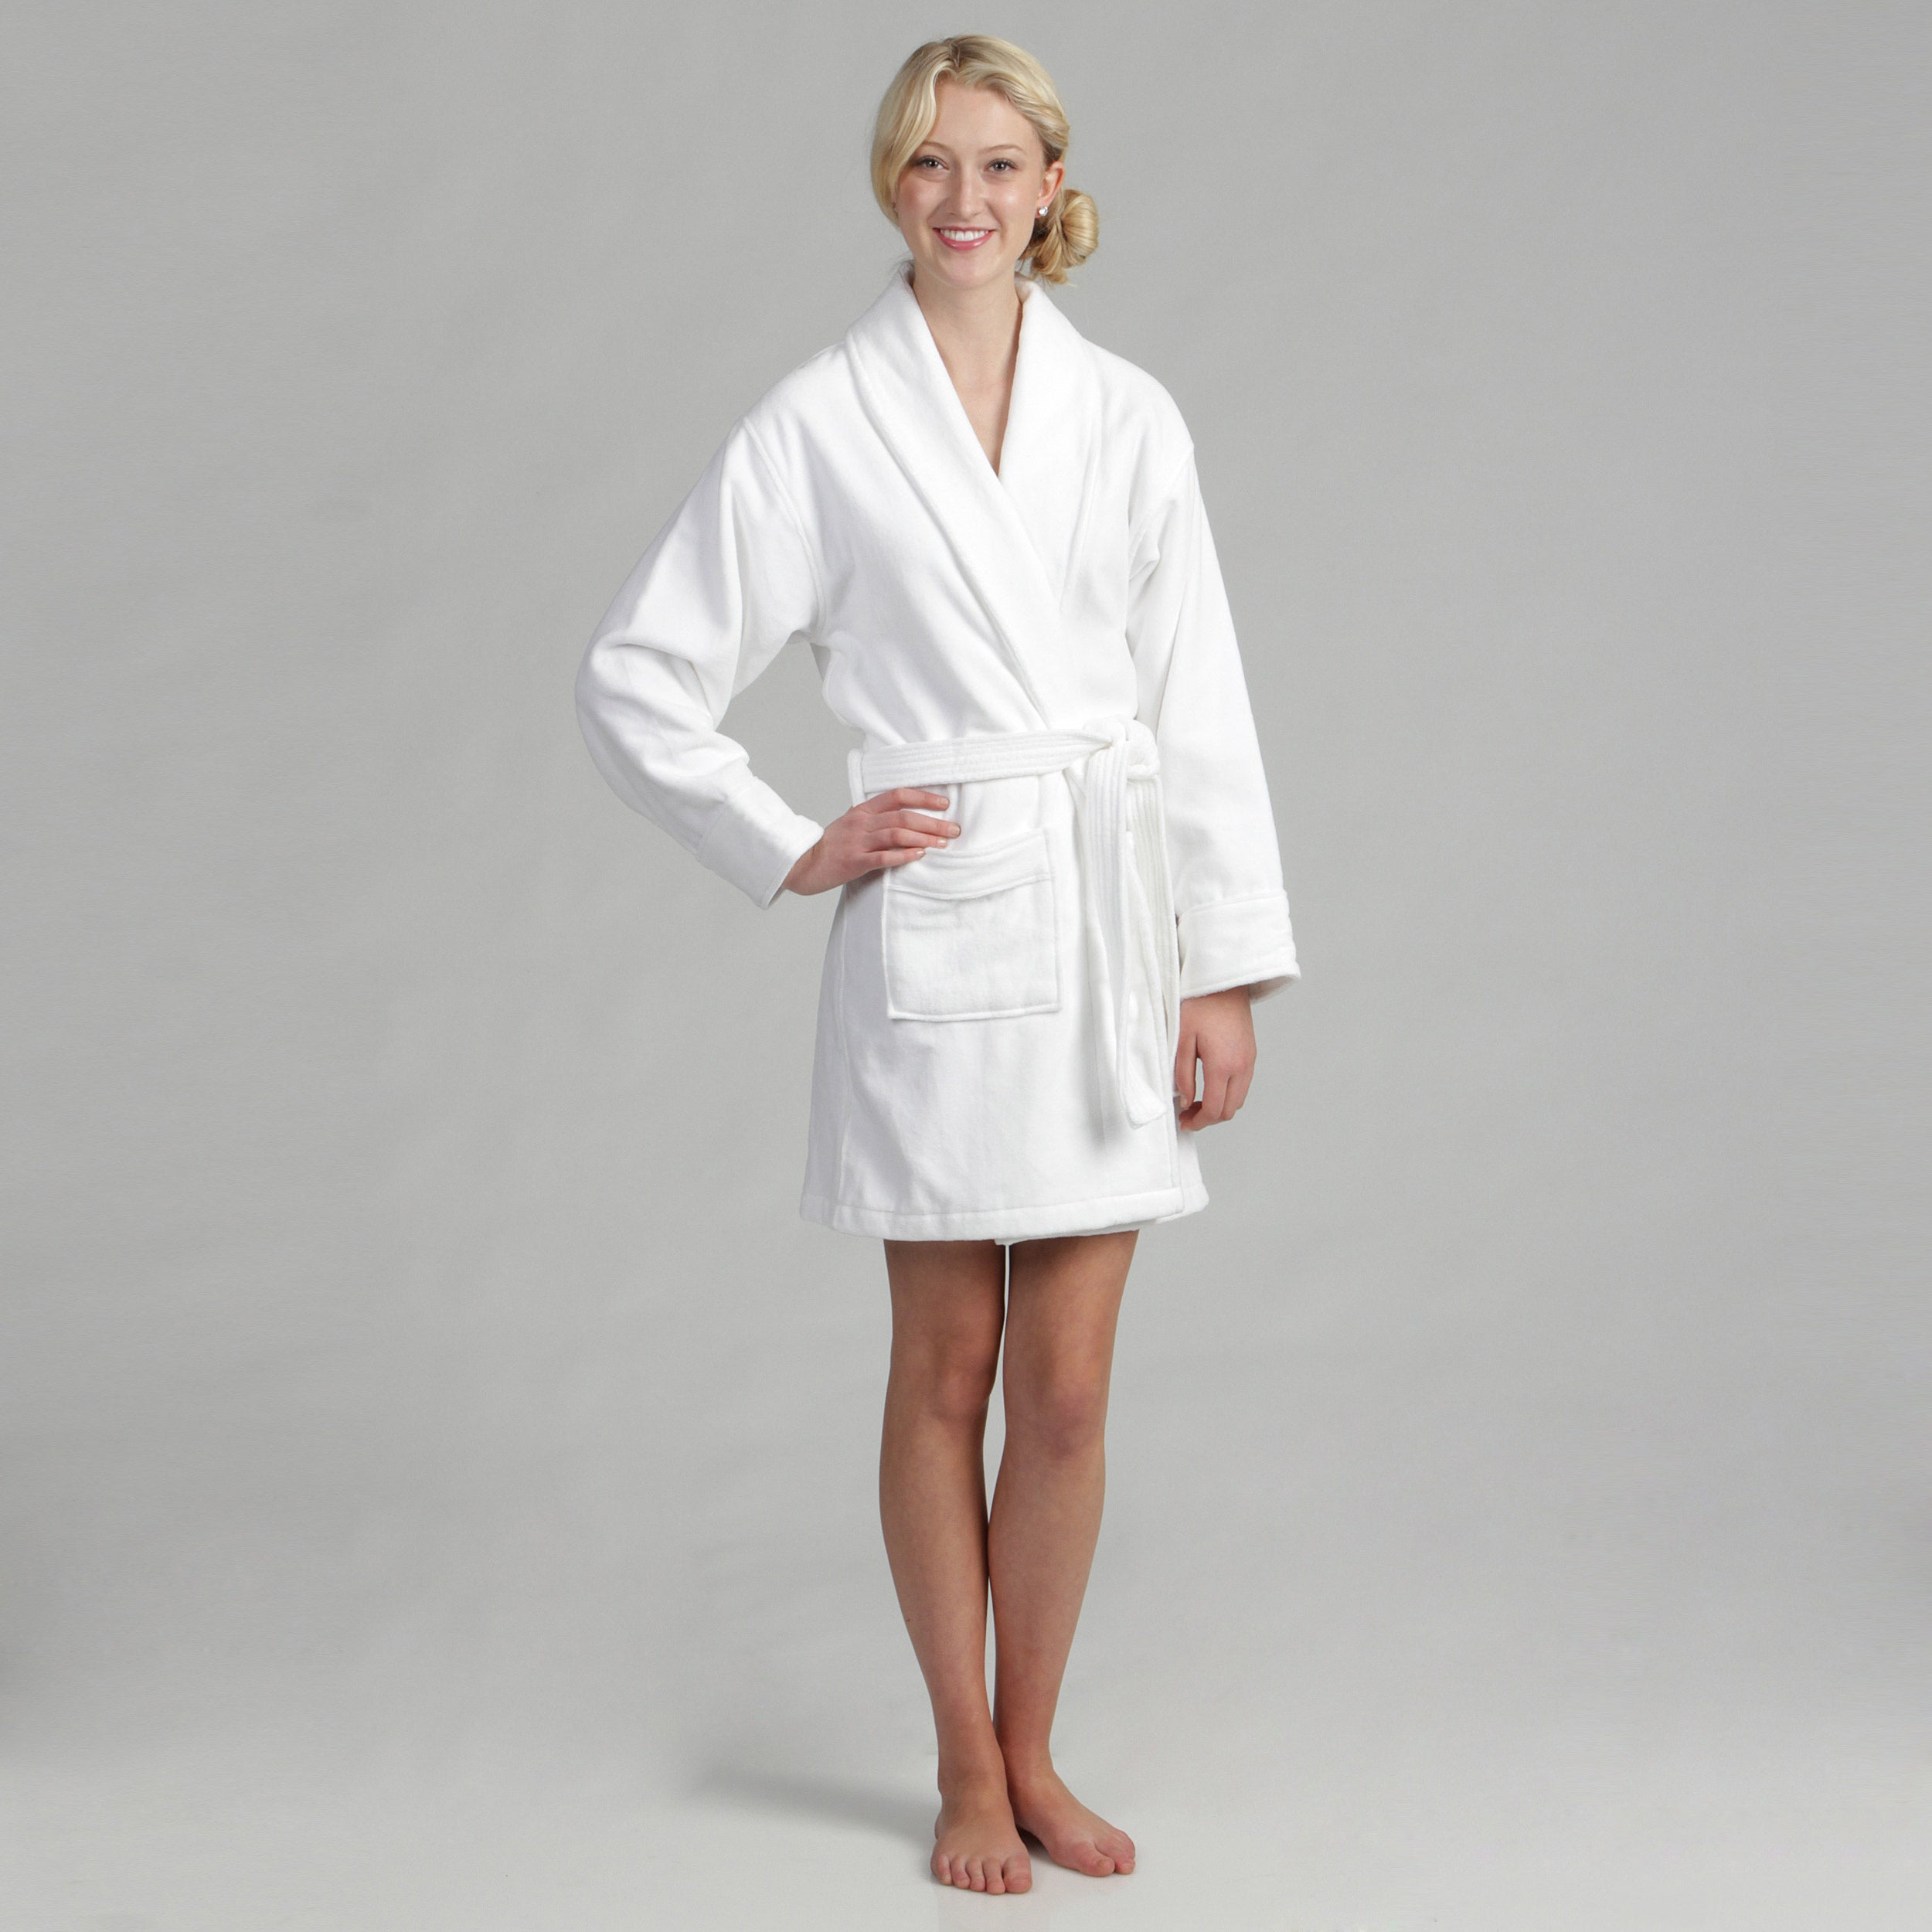 75d813d282 Shop Women s Cotton Terrycloth Bath Robe - Free Shipping Today - Overstock  - 5510173